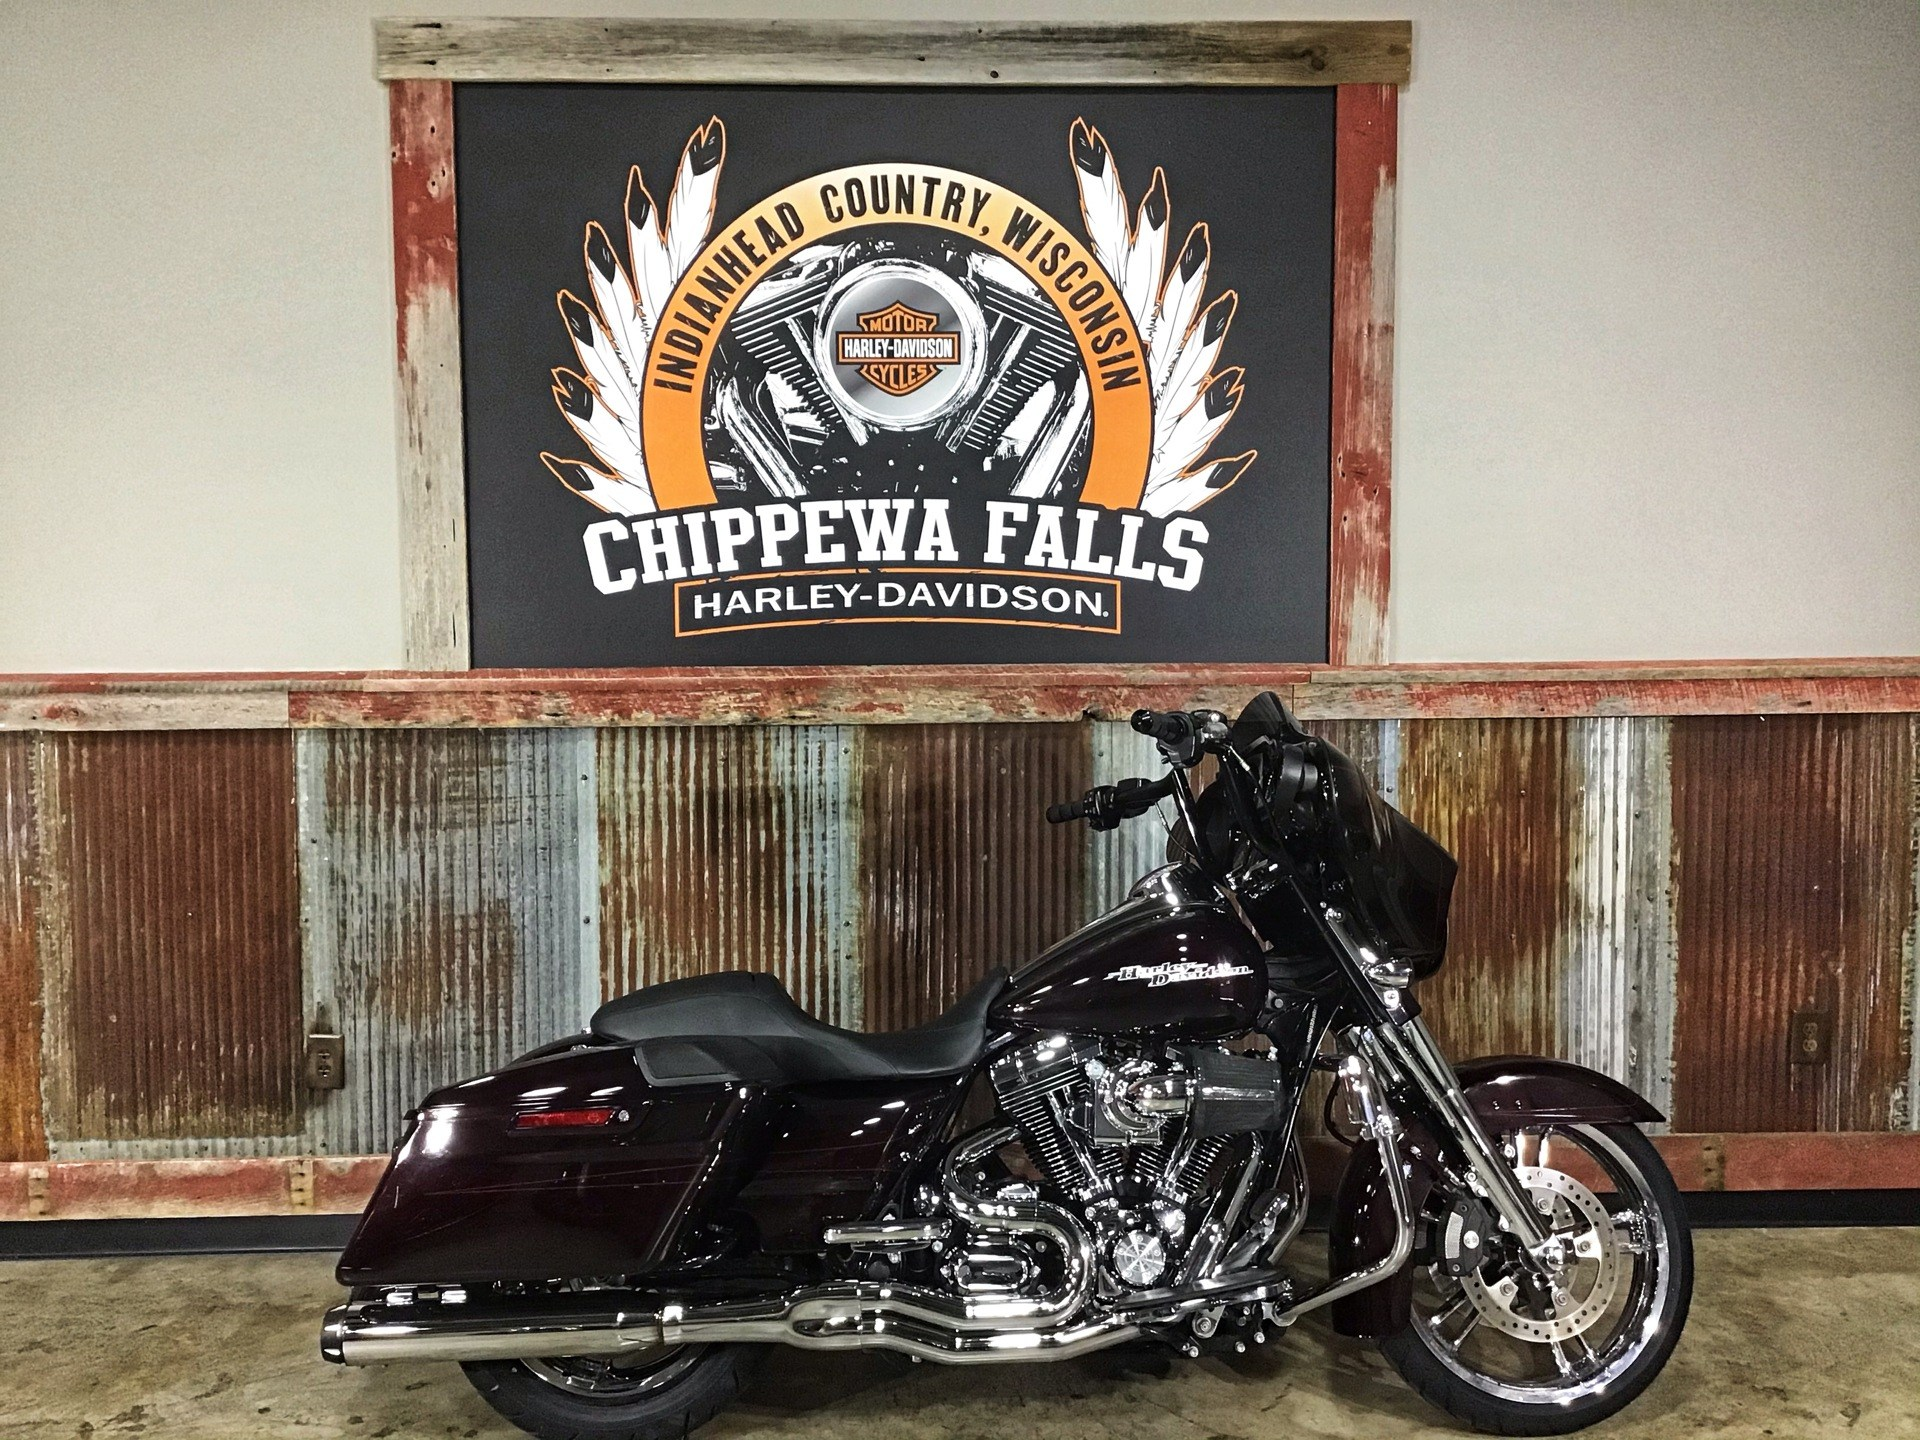 2014 Harley-Davidson Street Glide® Special in Chippewa Falls, Wisconsin - Photo 12